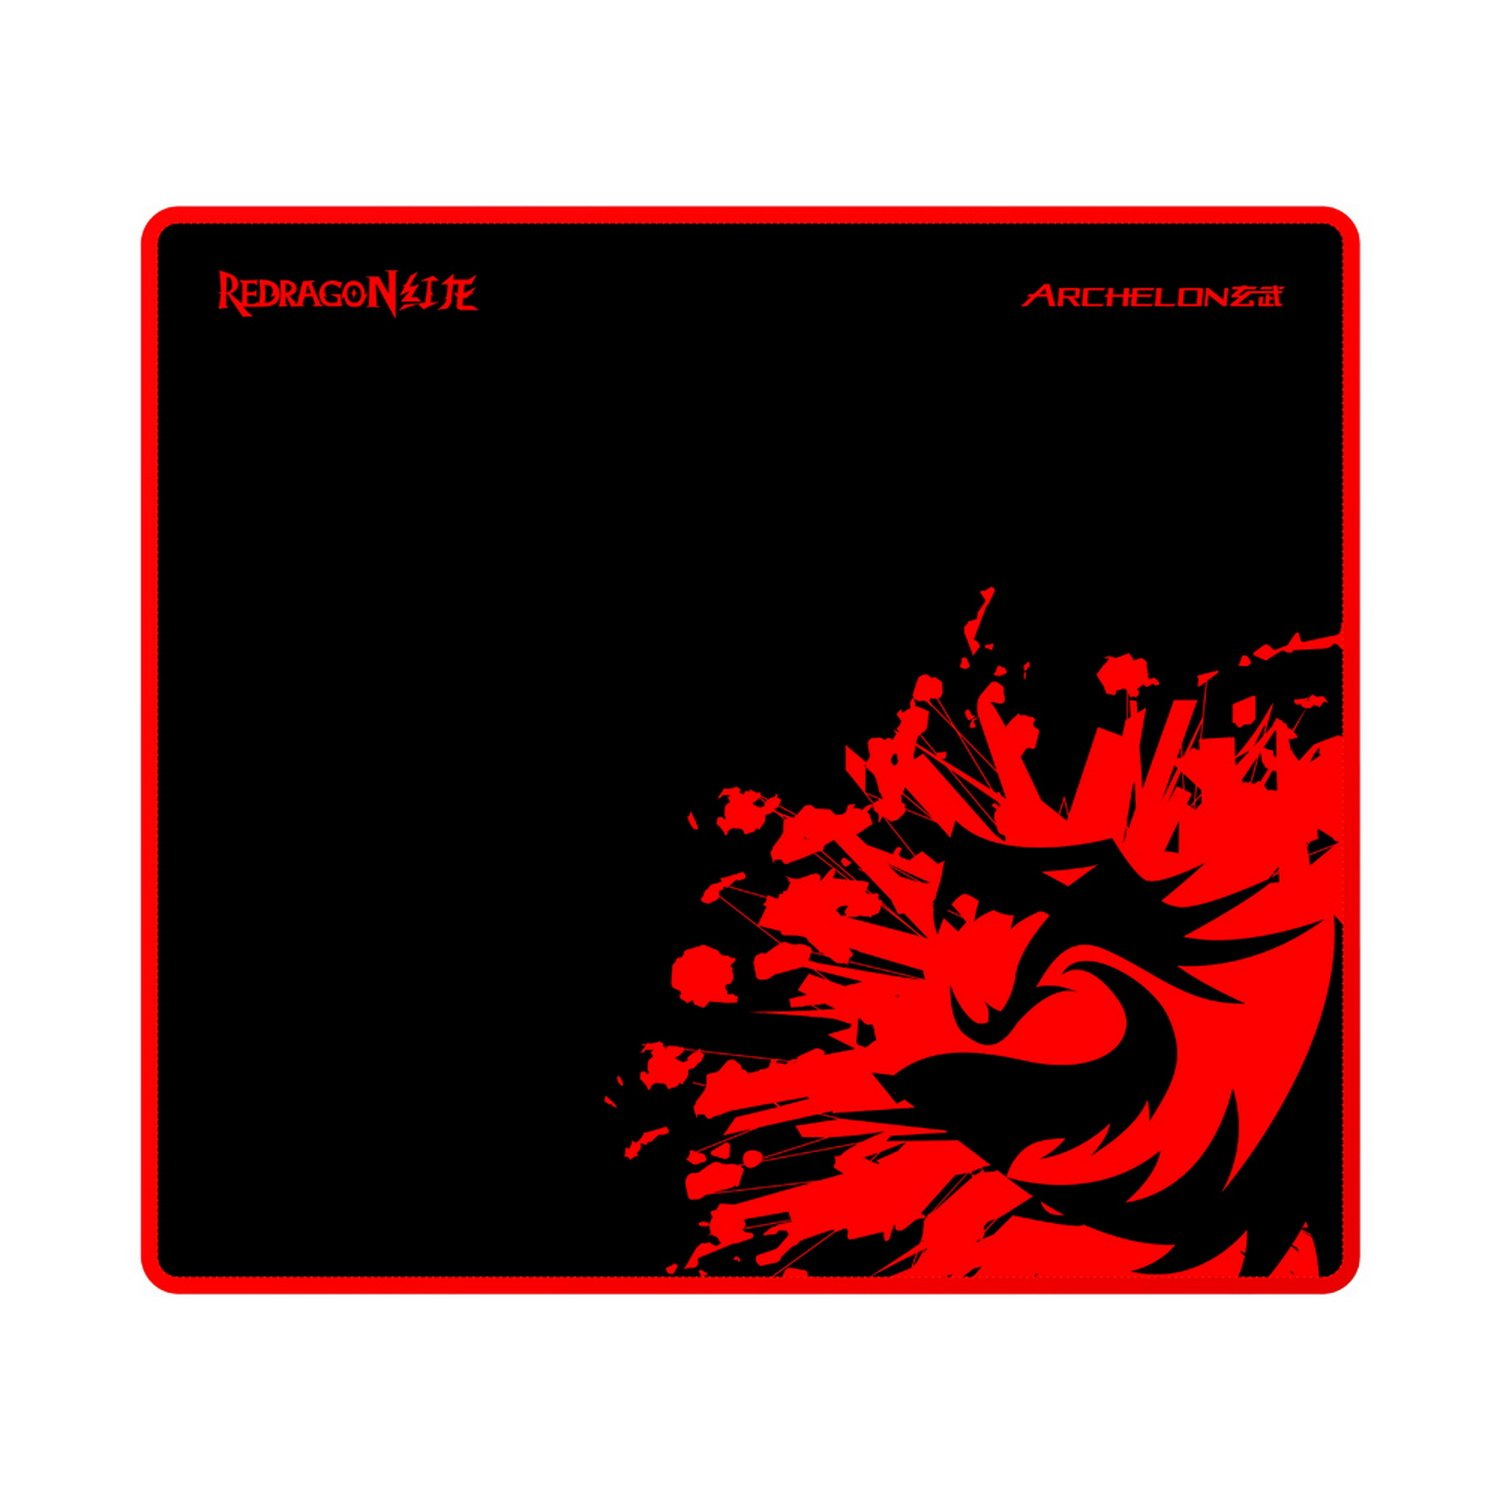 Mousepad Large Redragon P001 ARCHELON Gaming Mouse Pad, Stit